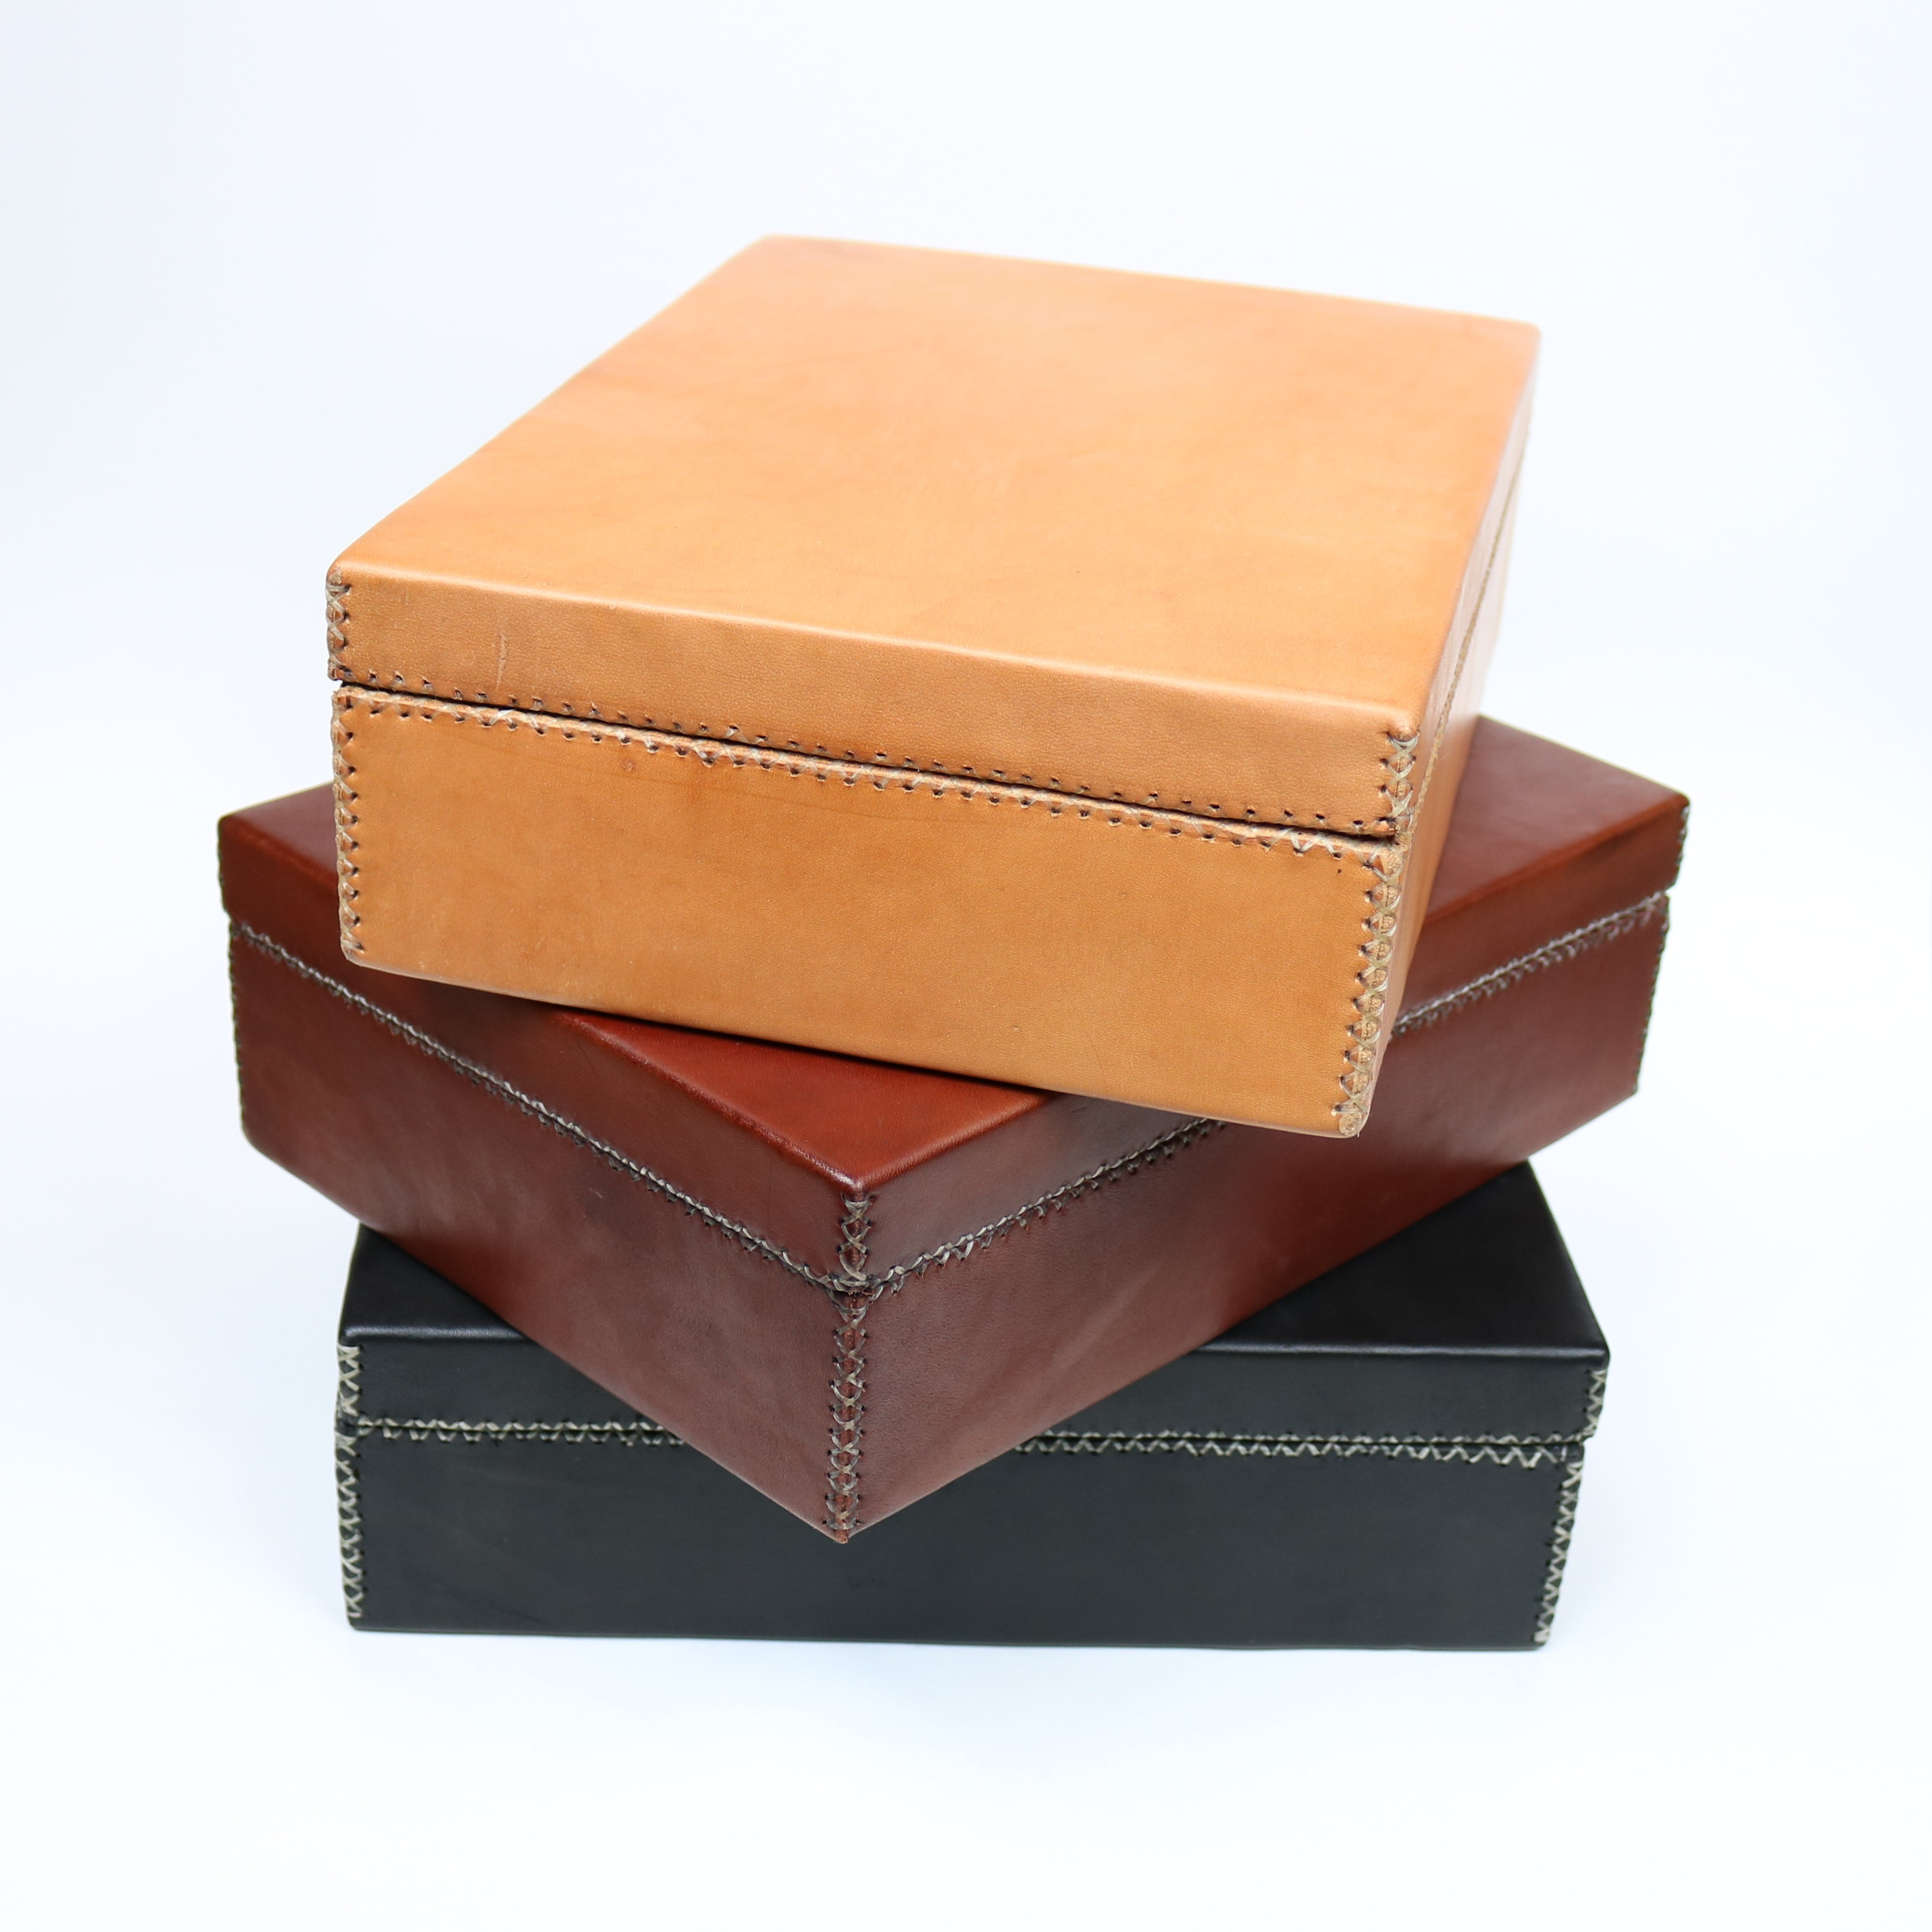 Bati | Tan Leather Box | Quality Handmade Leather Goods from Paraguay, Leather Accessories, Home and Decor, Leather Trays, Leather Boxes, Bati